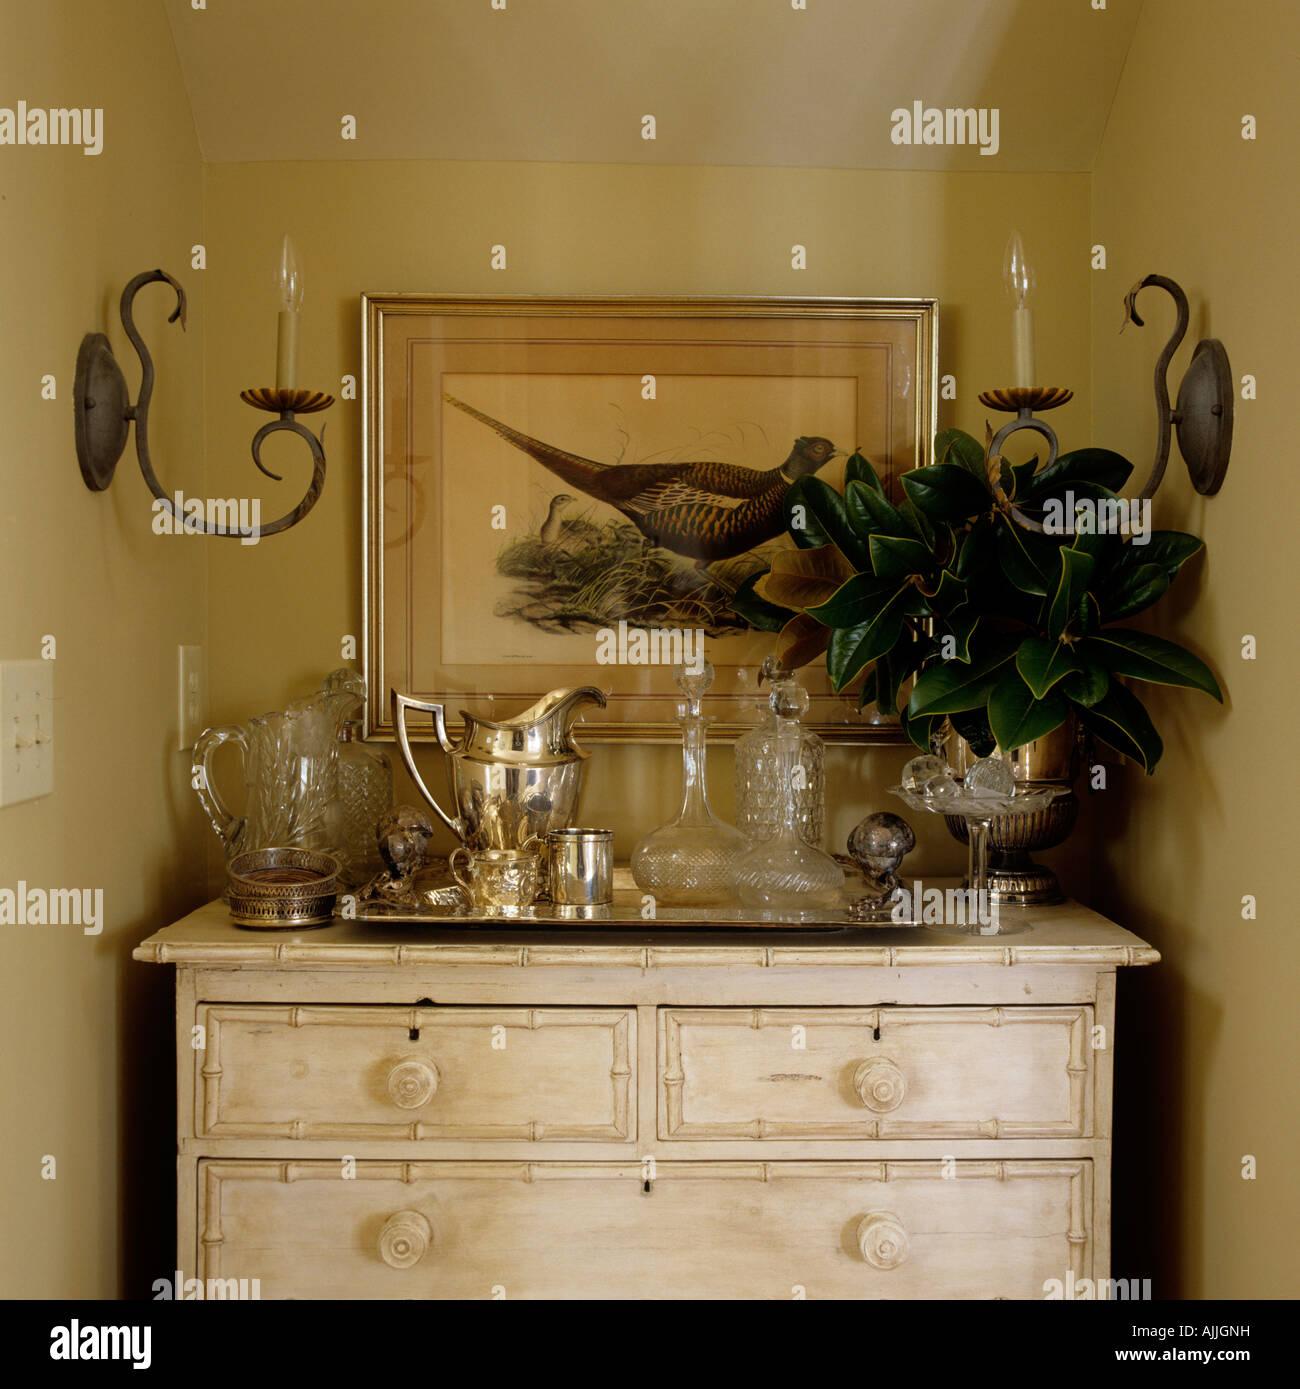 Chest of drawers set in alcove with decanter and silverware in top - Stock Image